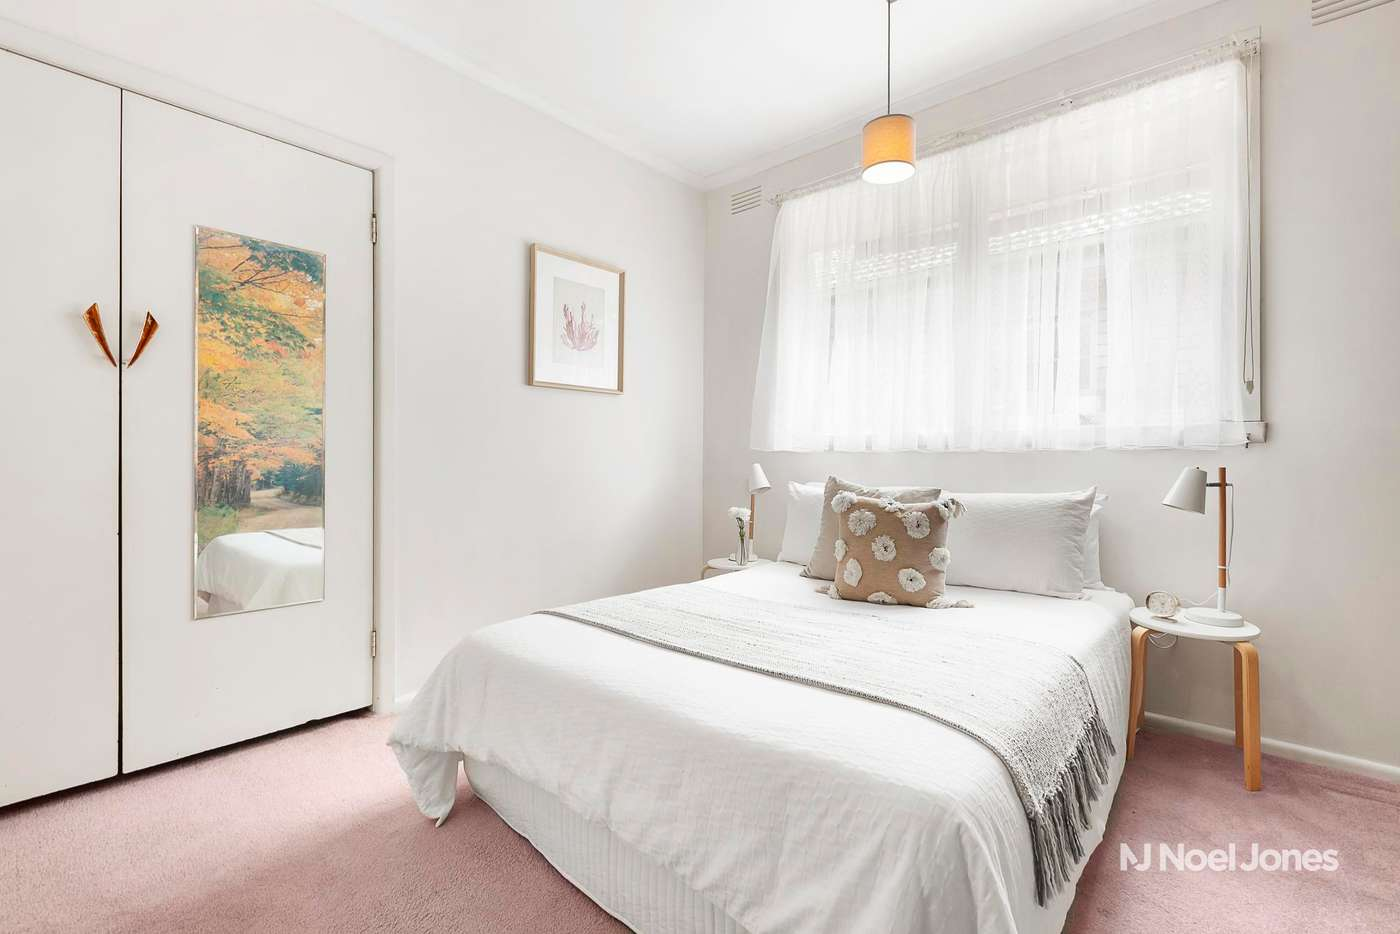 Seventh view of Homely house listing, 9 Roselea Street, Box Hill North VIC 3129